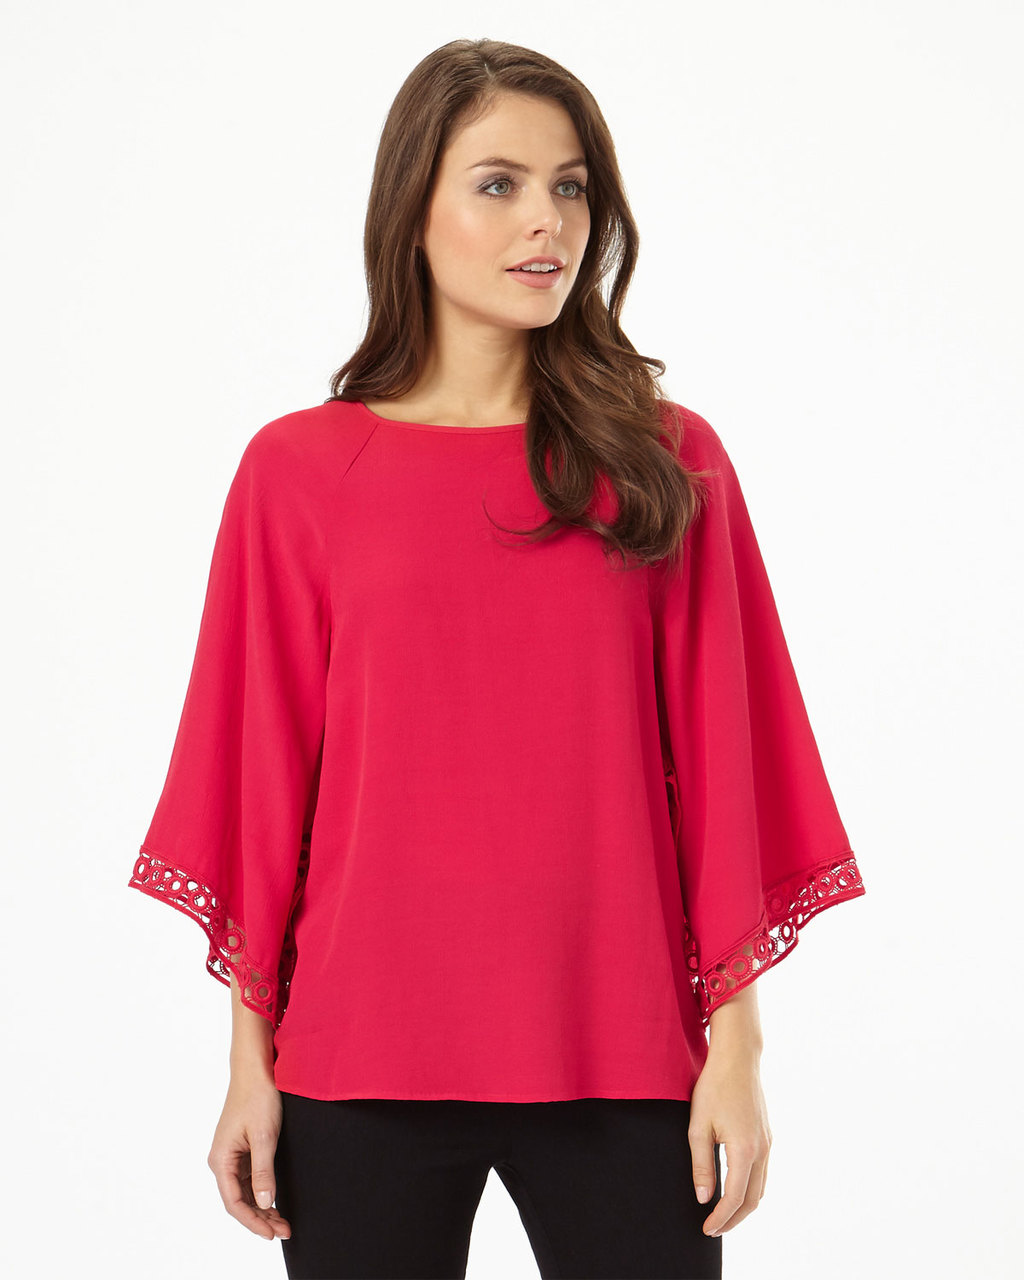 Hena Crochet Sleeve Top - neckline: round neck; pattern: plain; sleeve style: kimono; predominant colour: true red; occasions: casual, evening, creative work; length: standard; style: top; fibres: cotton - mix; fit: loose; sleeve length: 3/4 length; texture group: sheer fabrics/chiffon/organza etc.; pattern type: fabric; season: s/s 2016; wardrobe: highlight